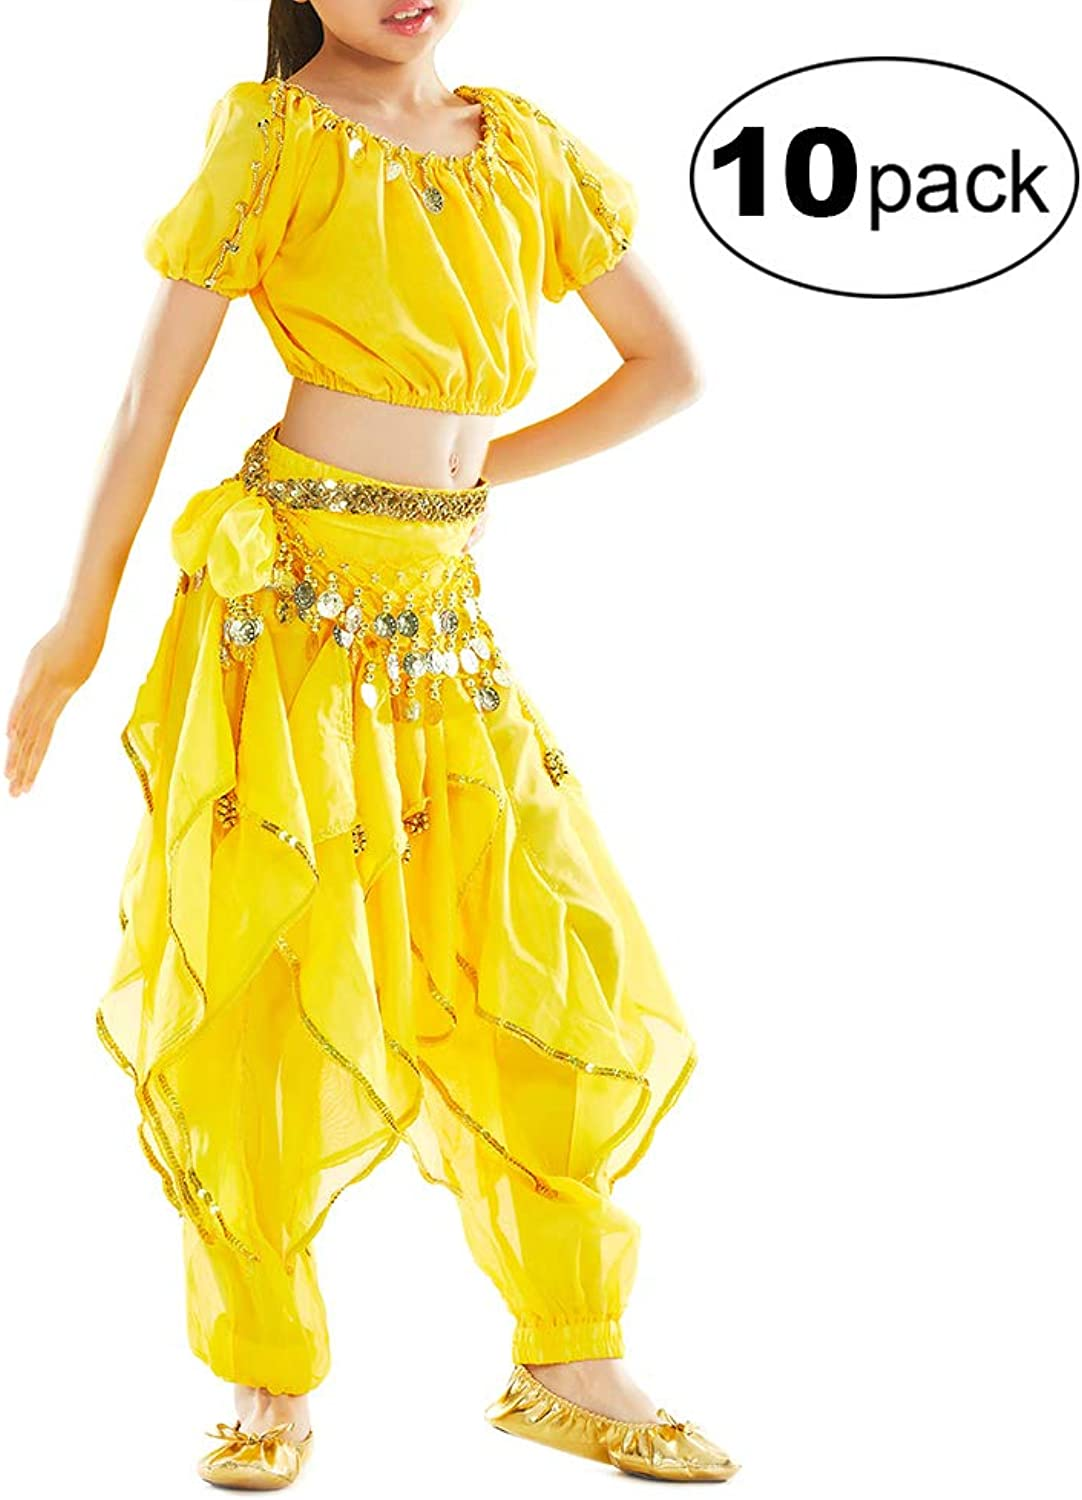 TOPTIE 10 Pack Kids Belly Dance Costume, Harem Pants & Top For Halloween